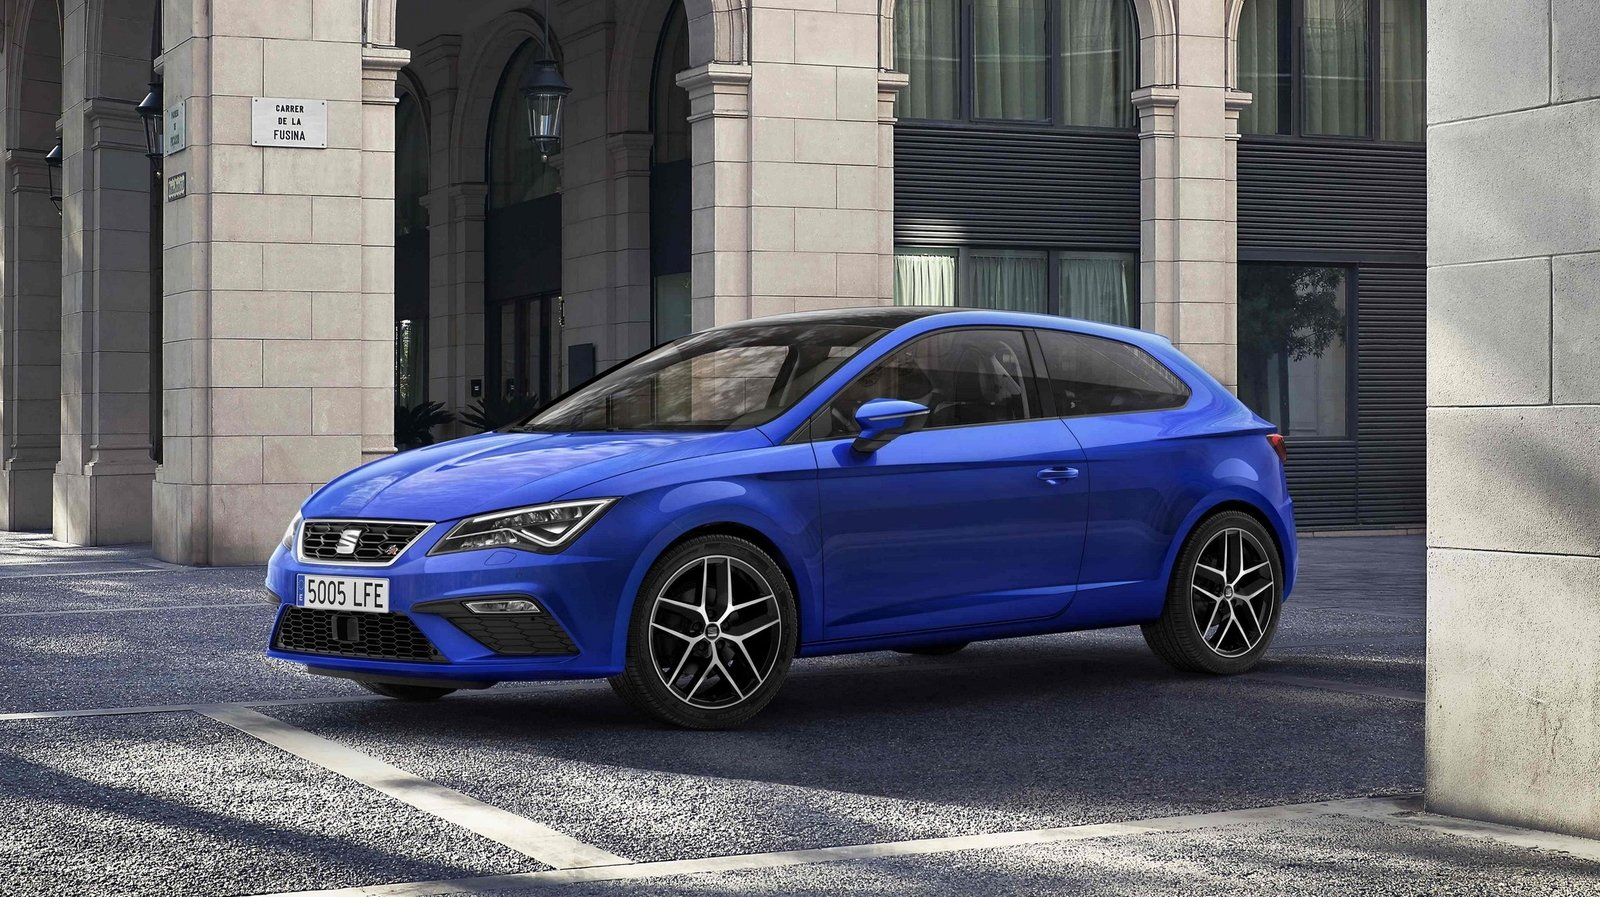 The 2020 Seat Leon Will Get Volkswagen Group's Newest